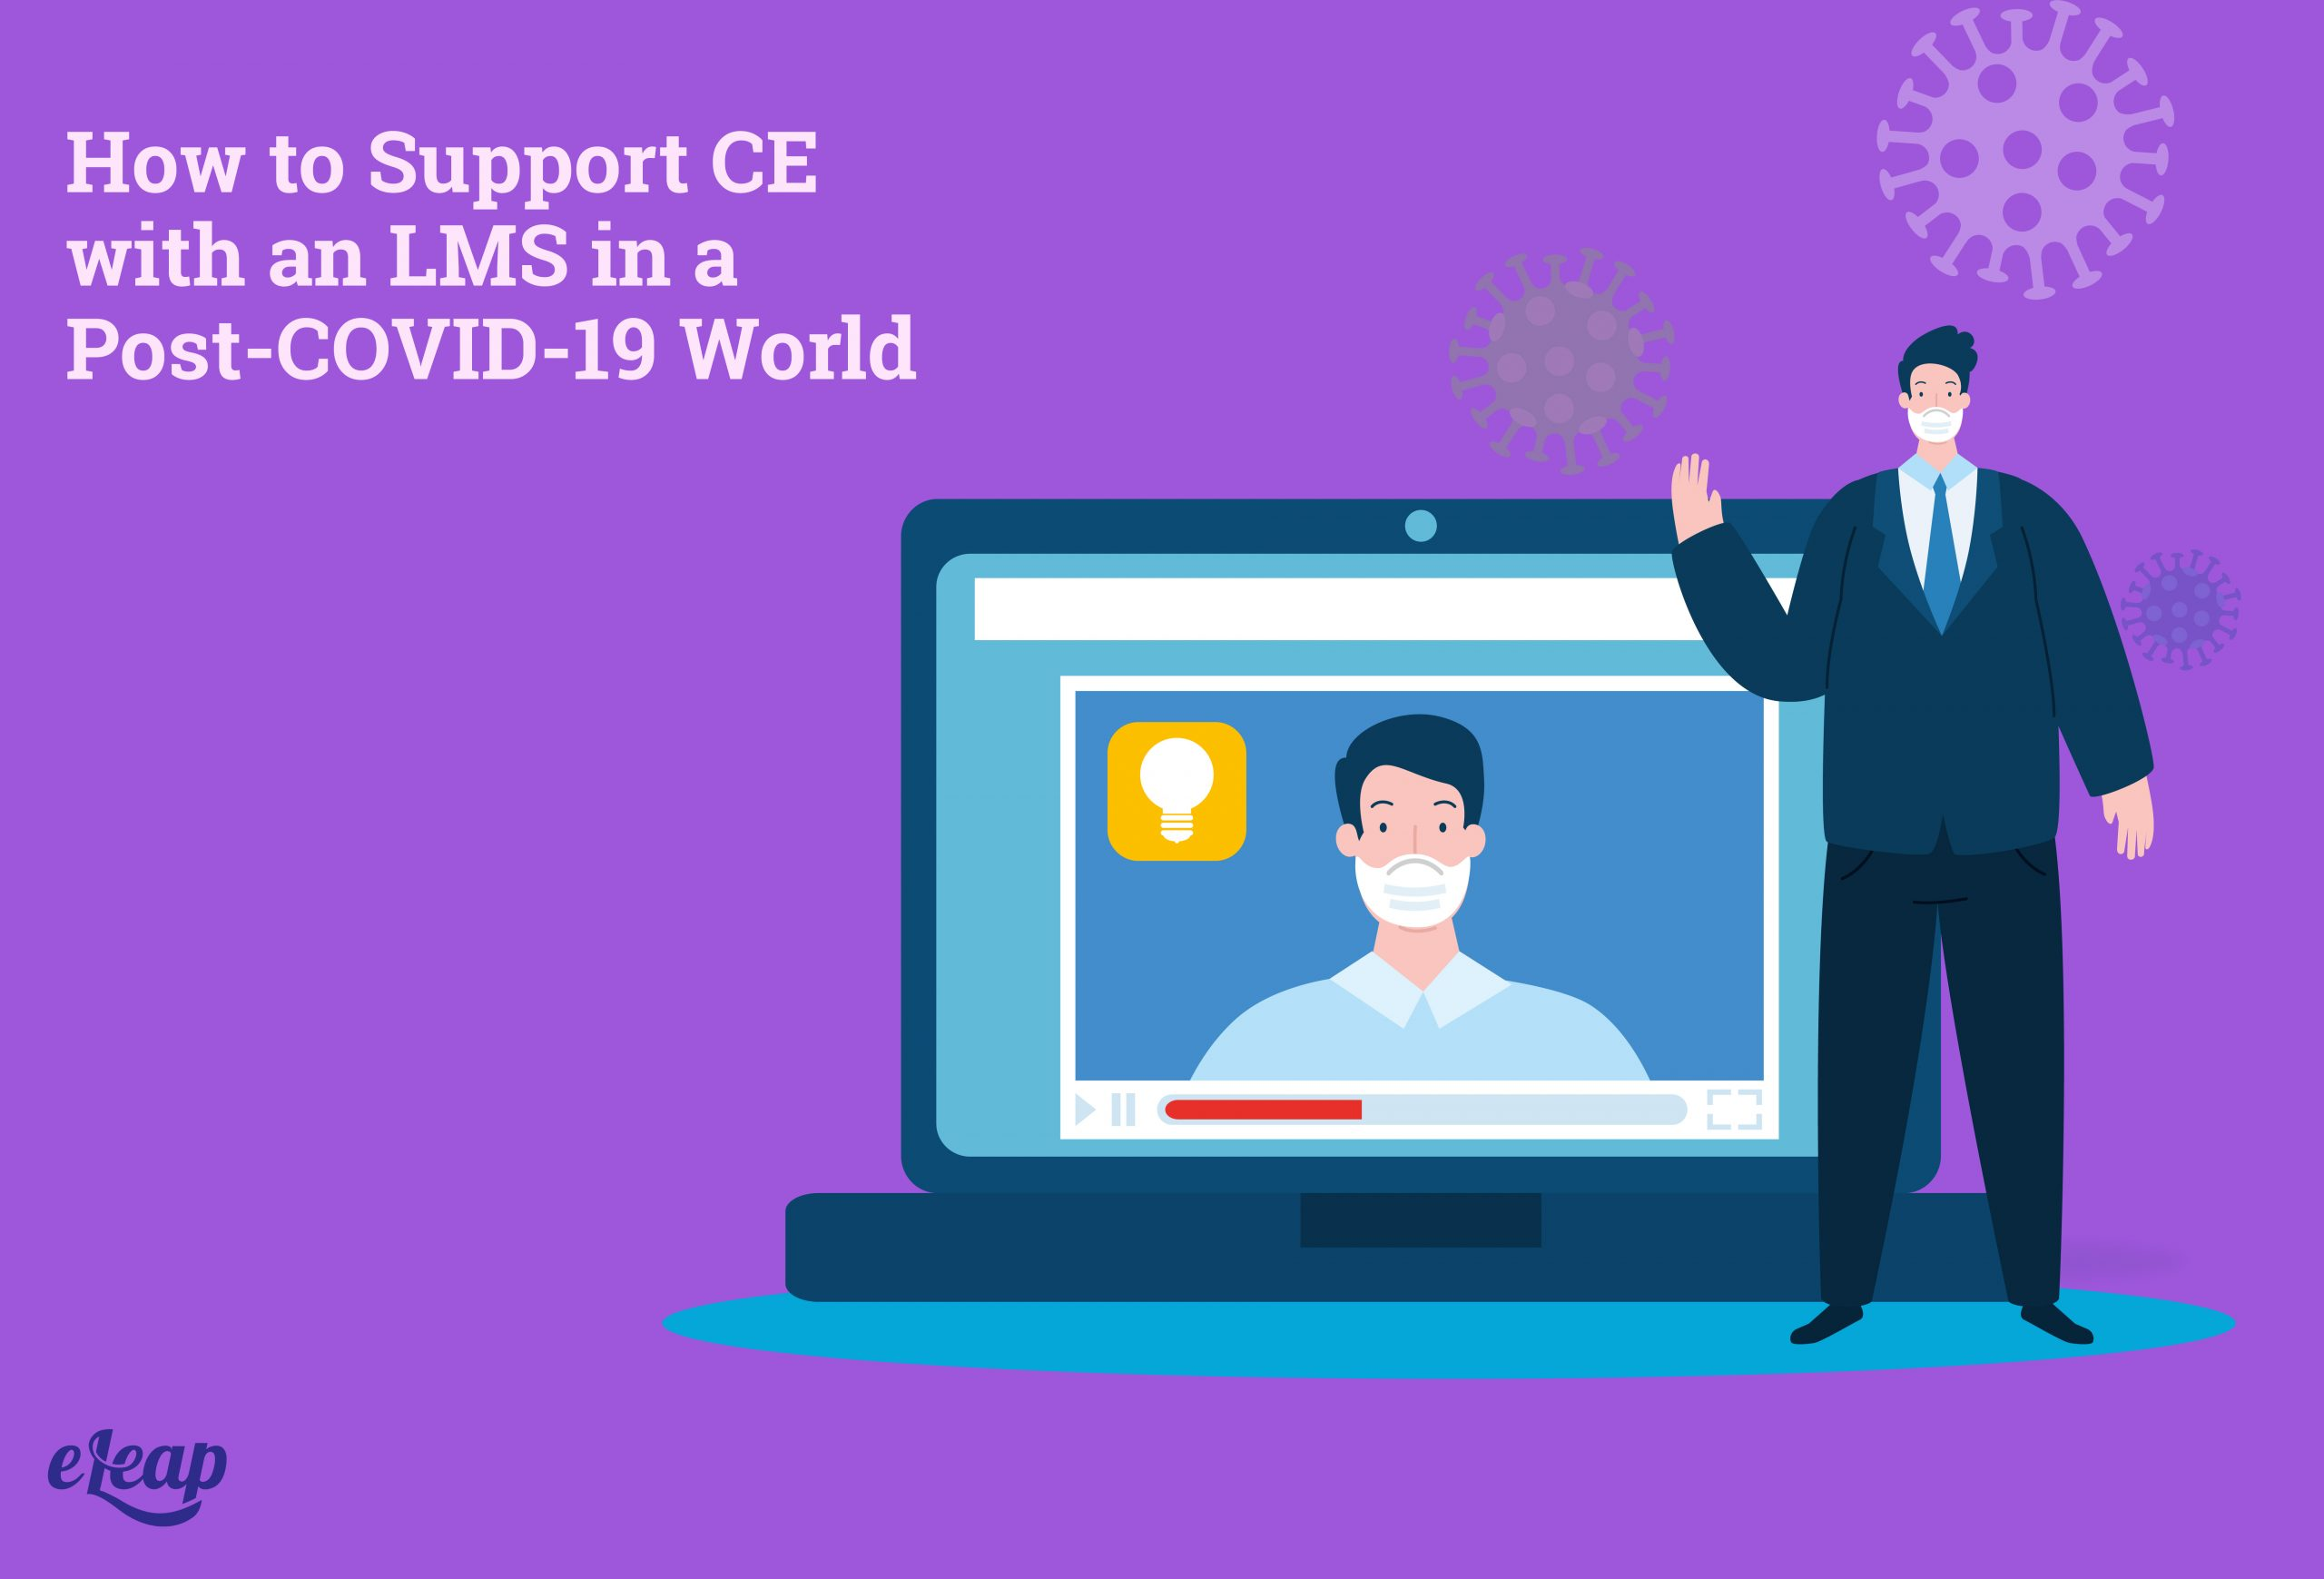 How to Support CE with an LMS in a Post-COVID-19 World